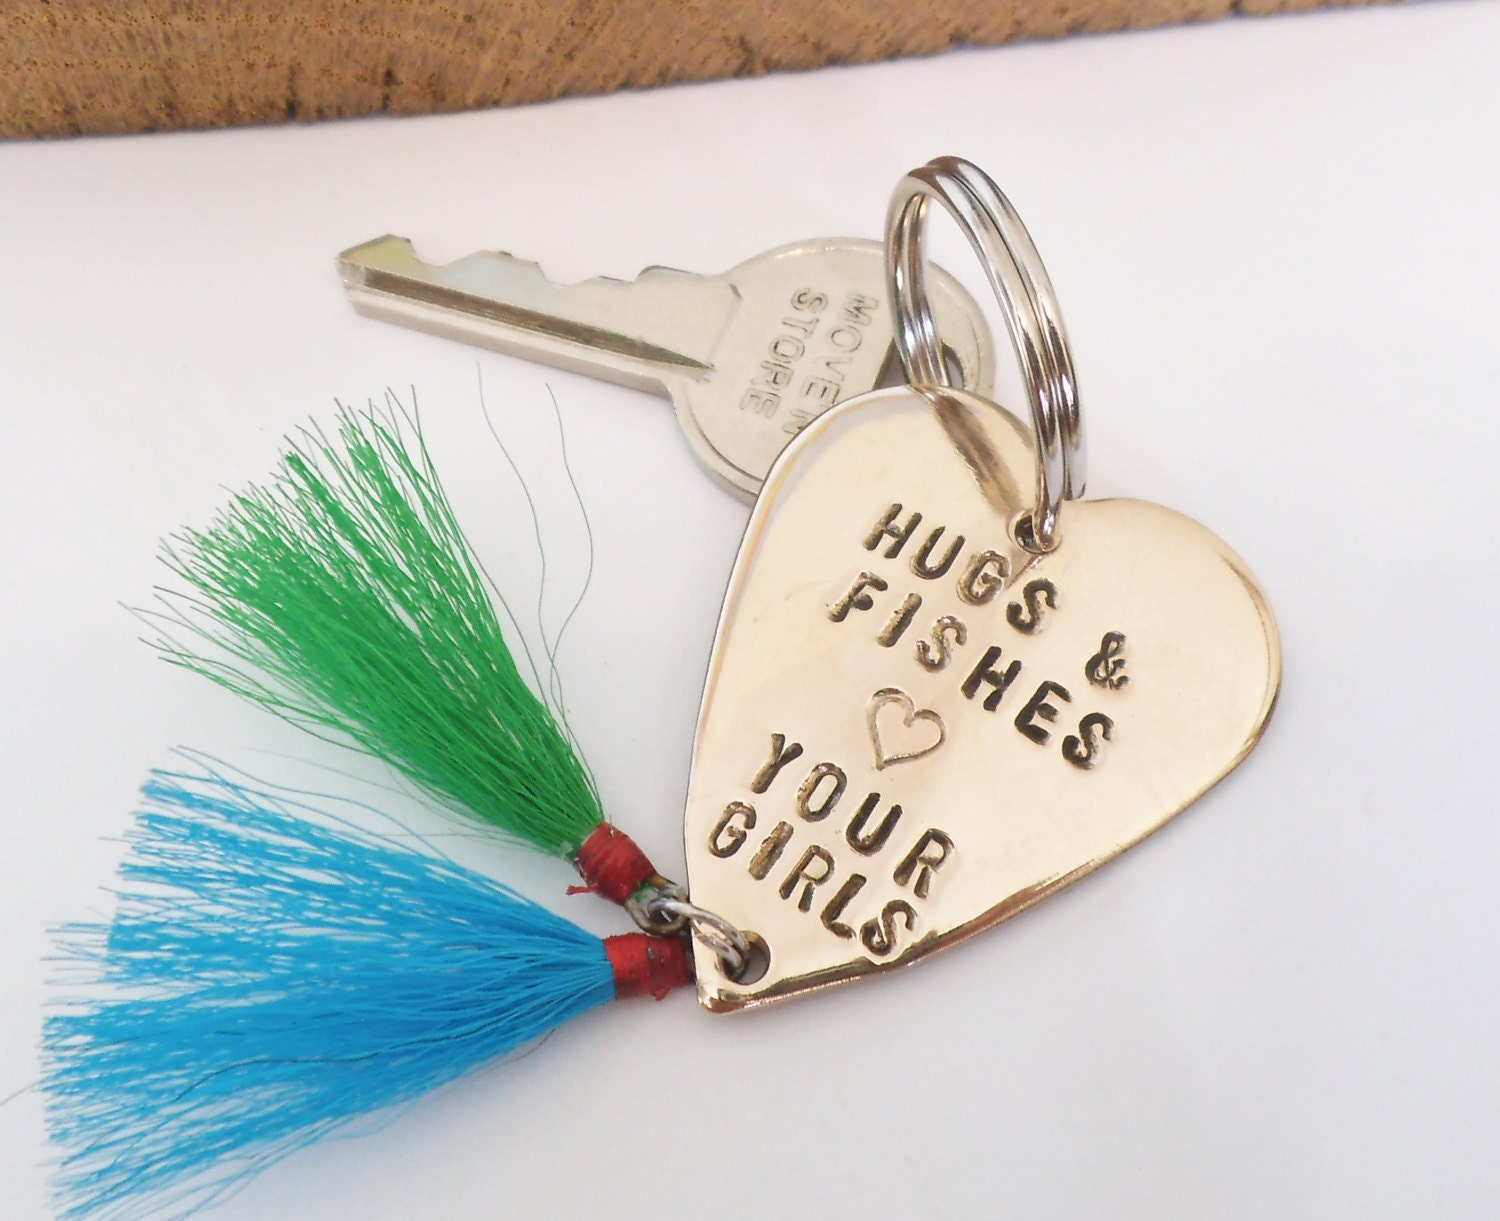 Daddy gift for christmas father daughter fishing lure keyring for Fishing gifts for dad